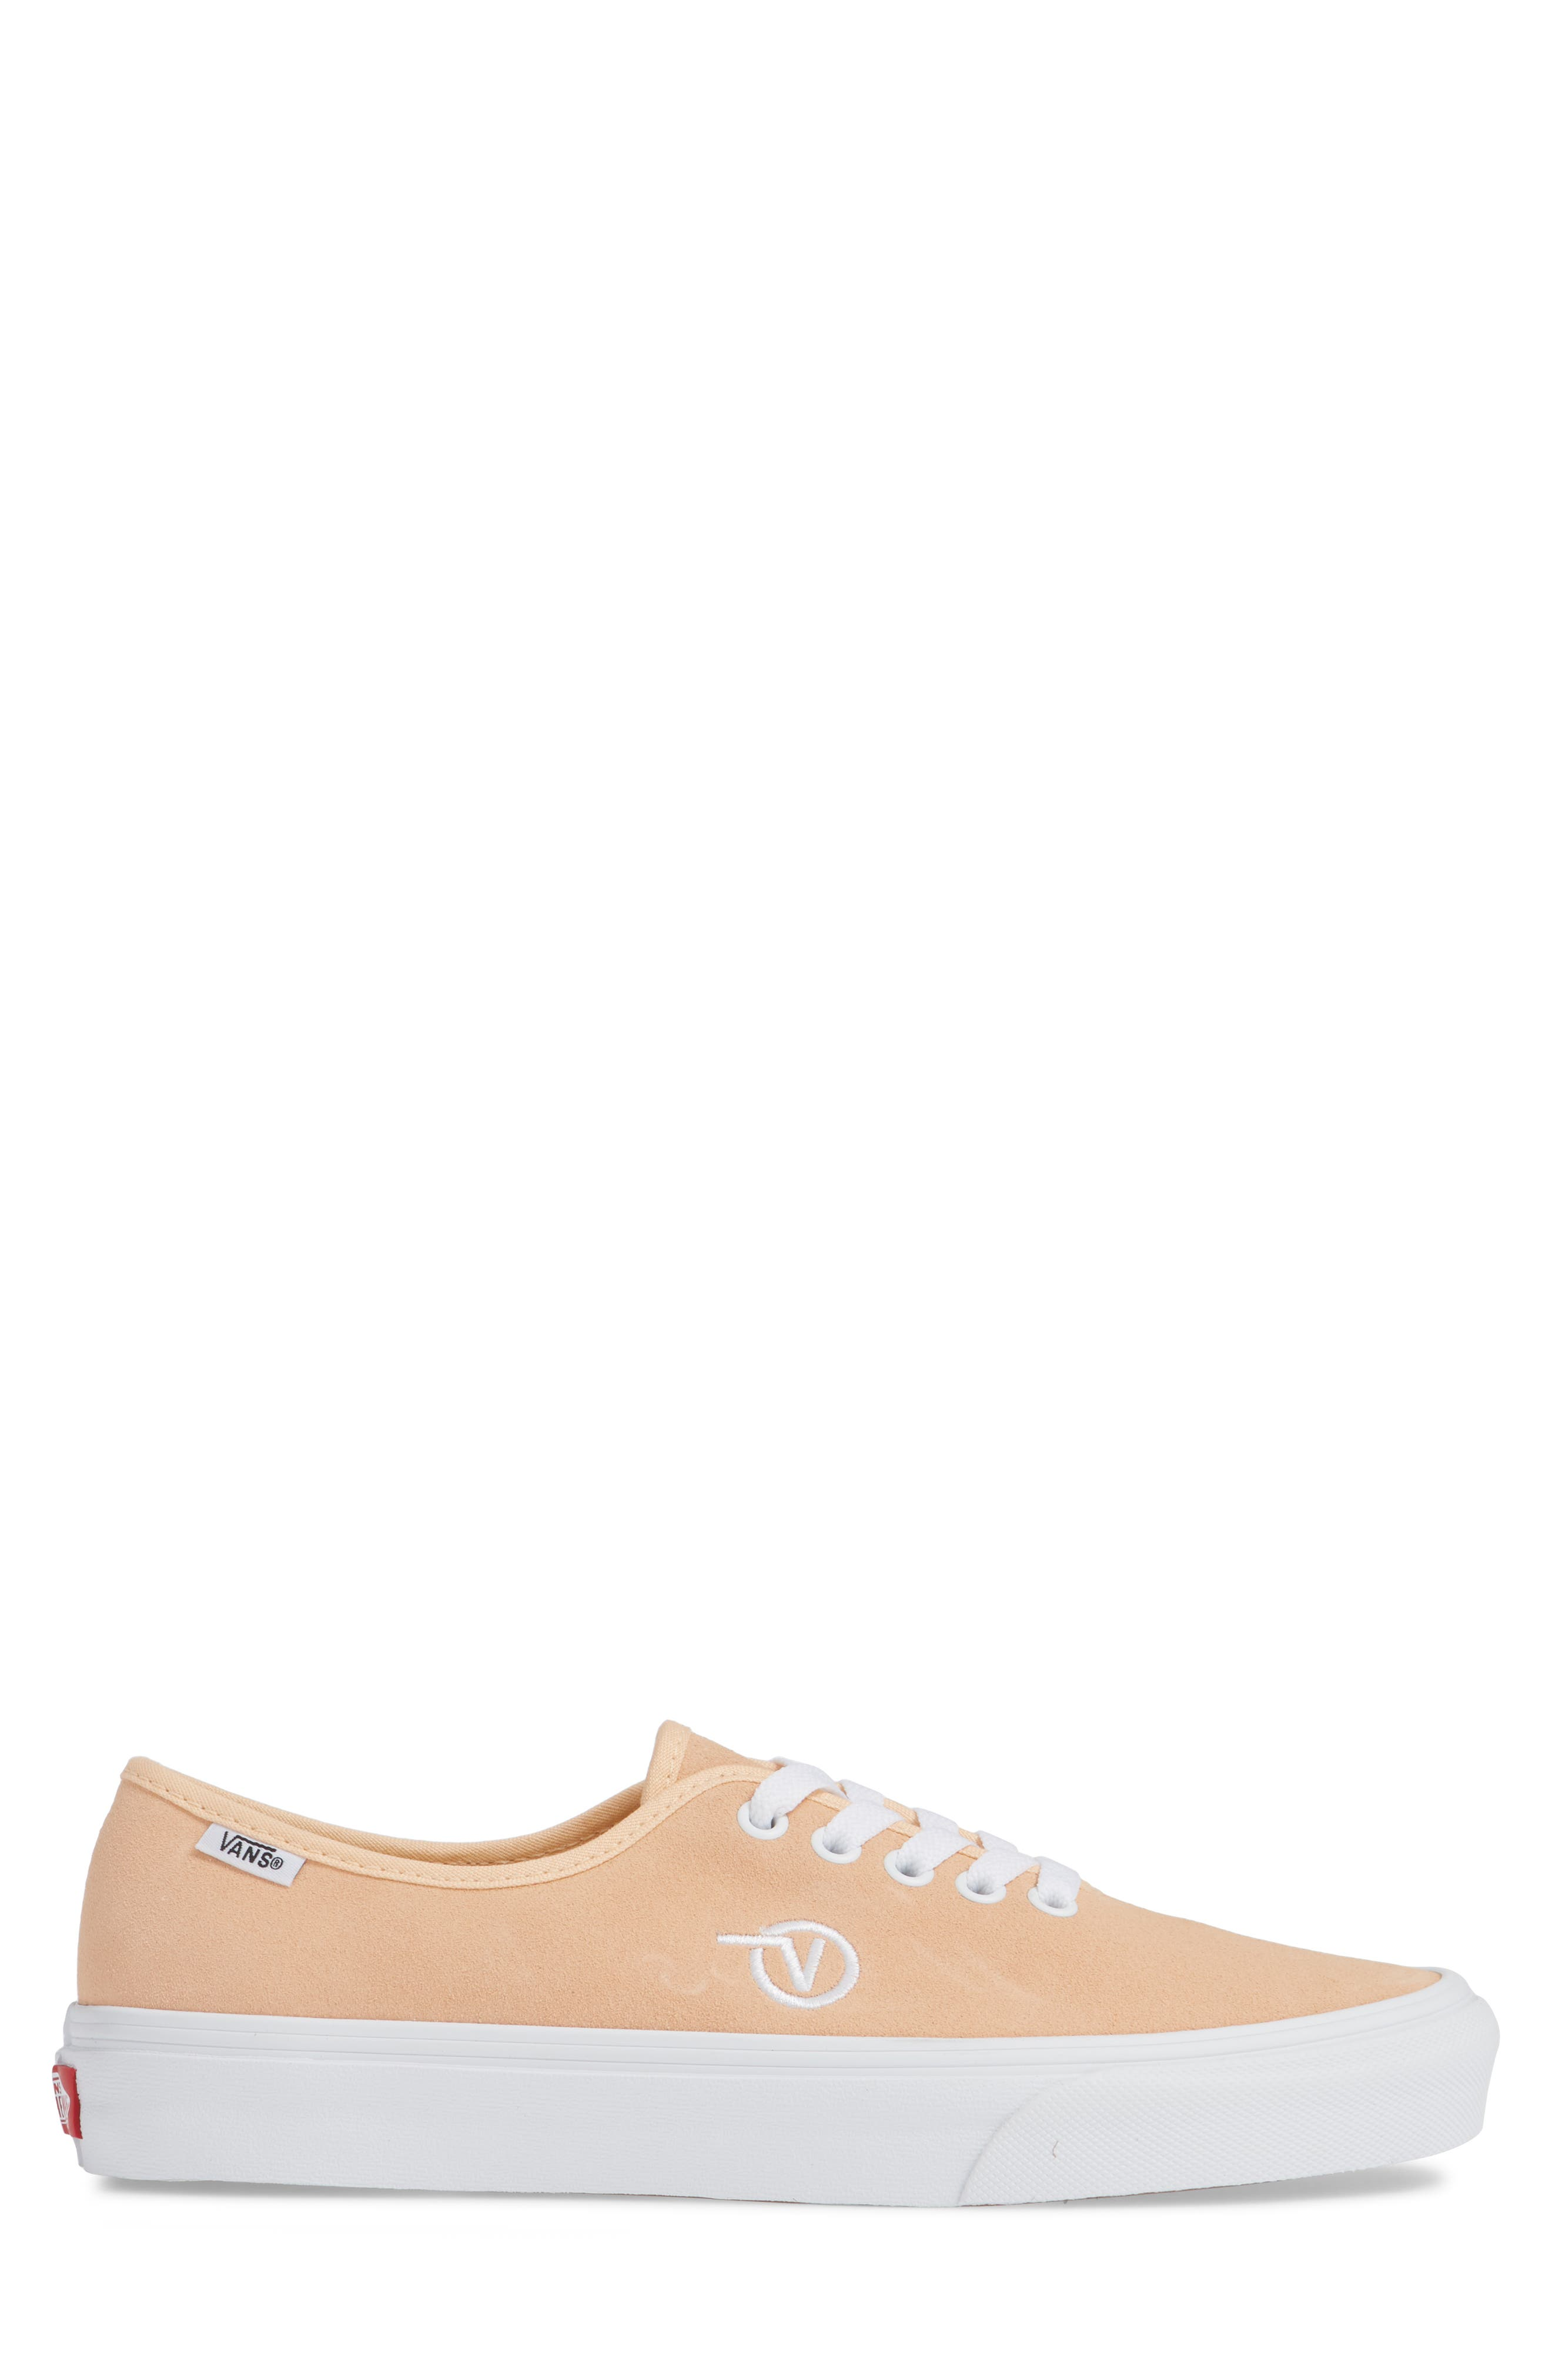 Authentic One-Piece Sneaker,                             Alternate thumbnail 3, color,                             BLEACHED APRICOT/ SUEDE